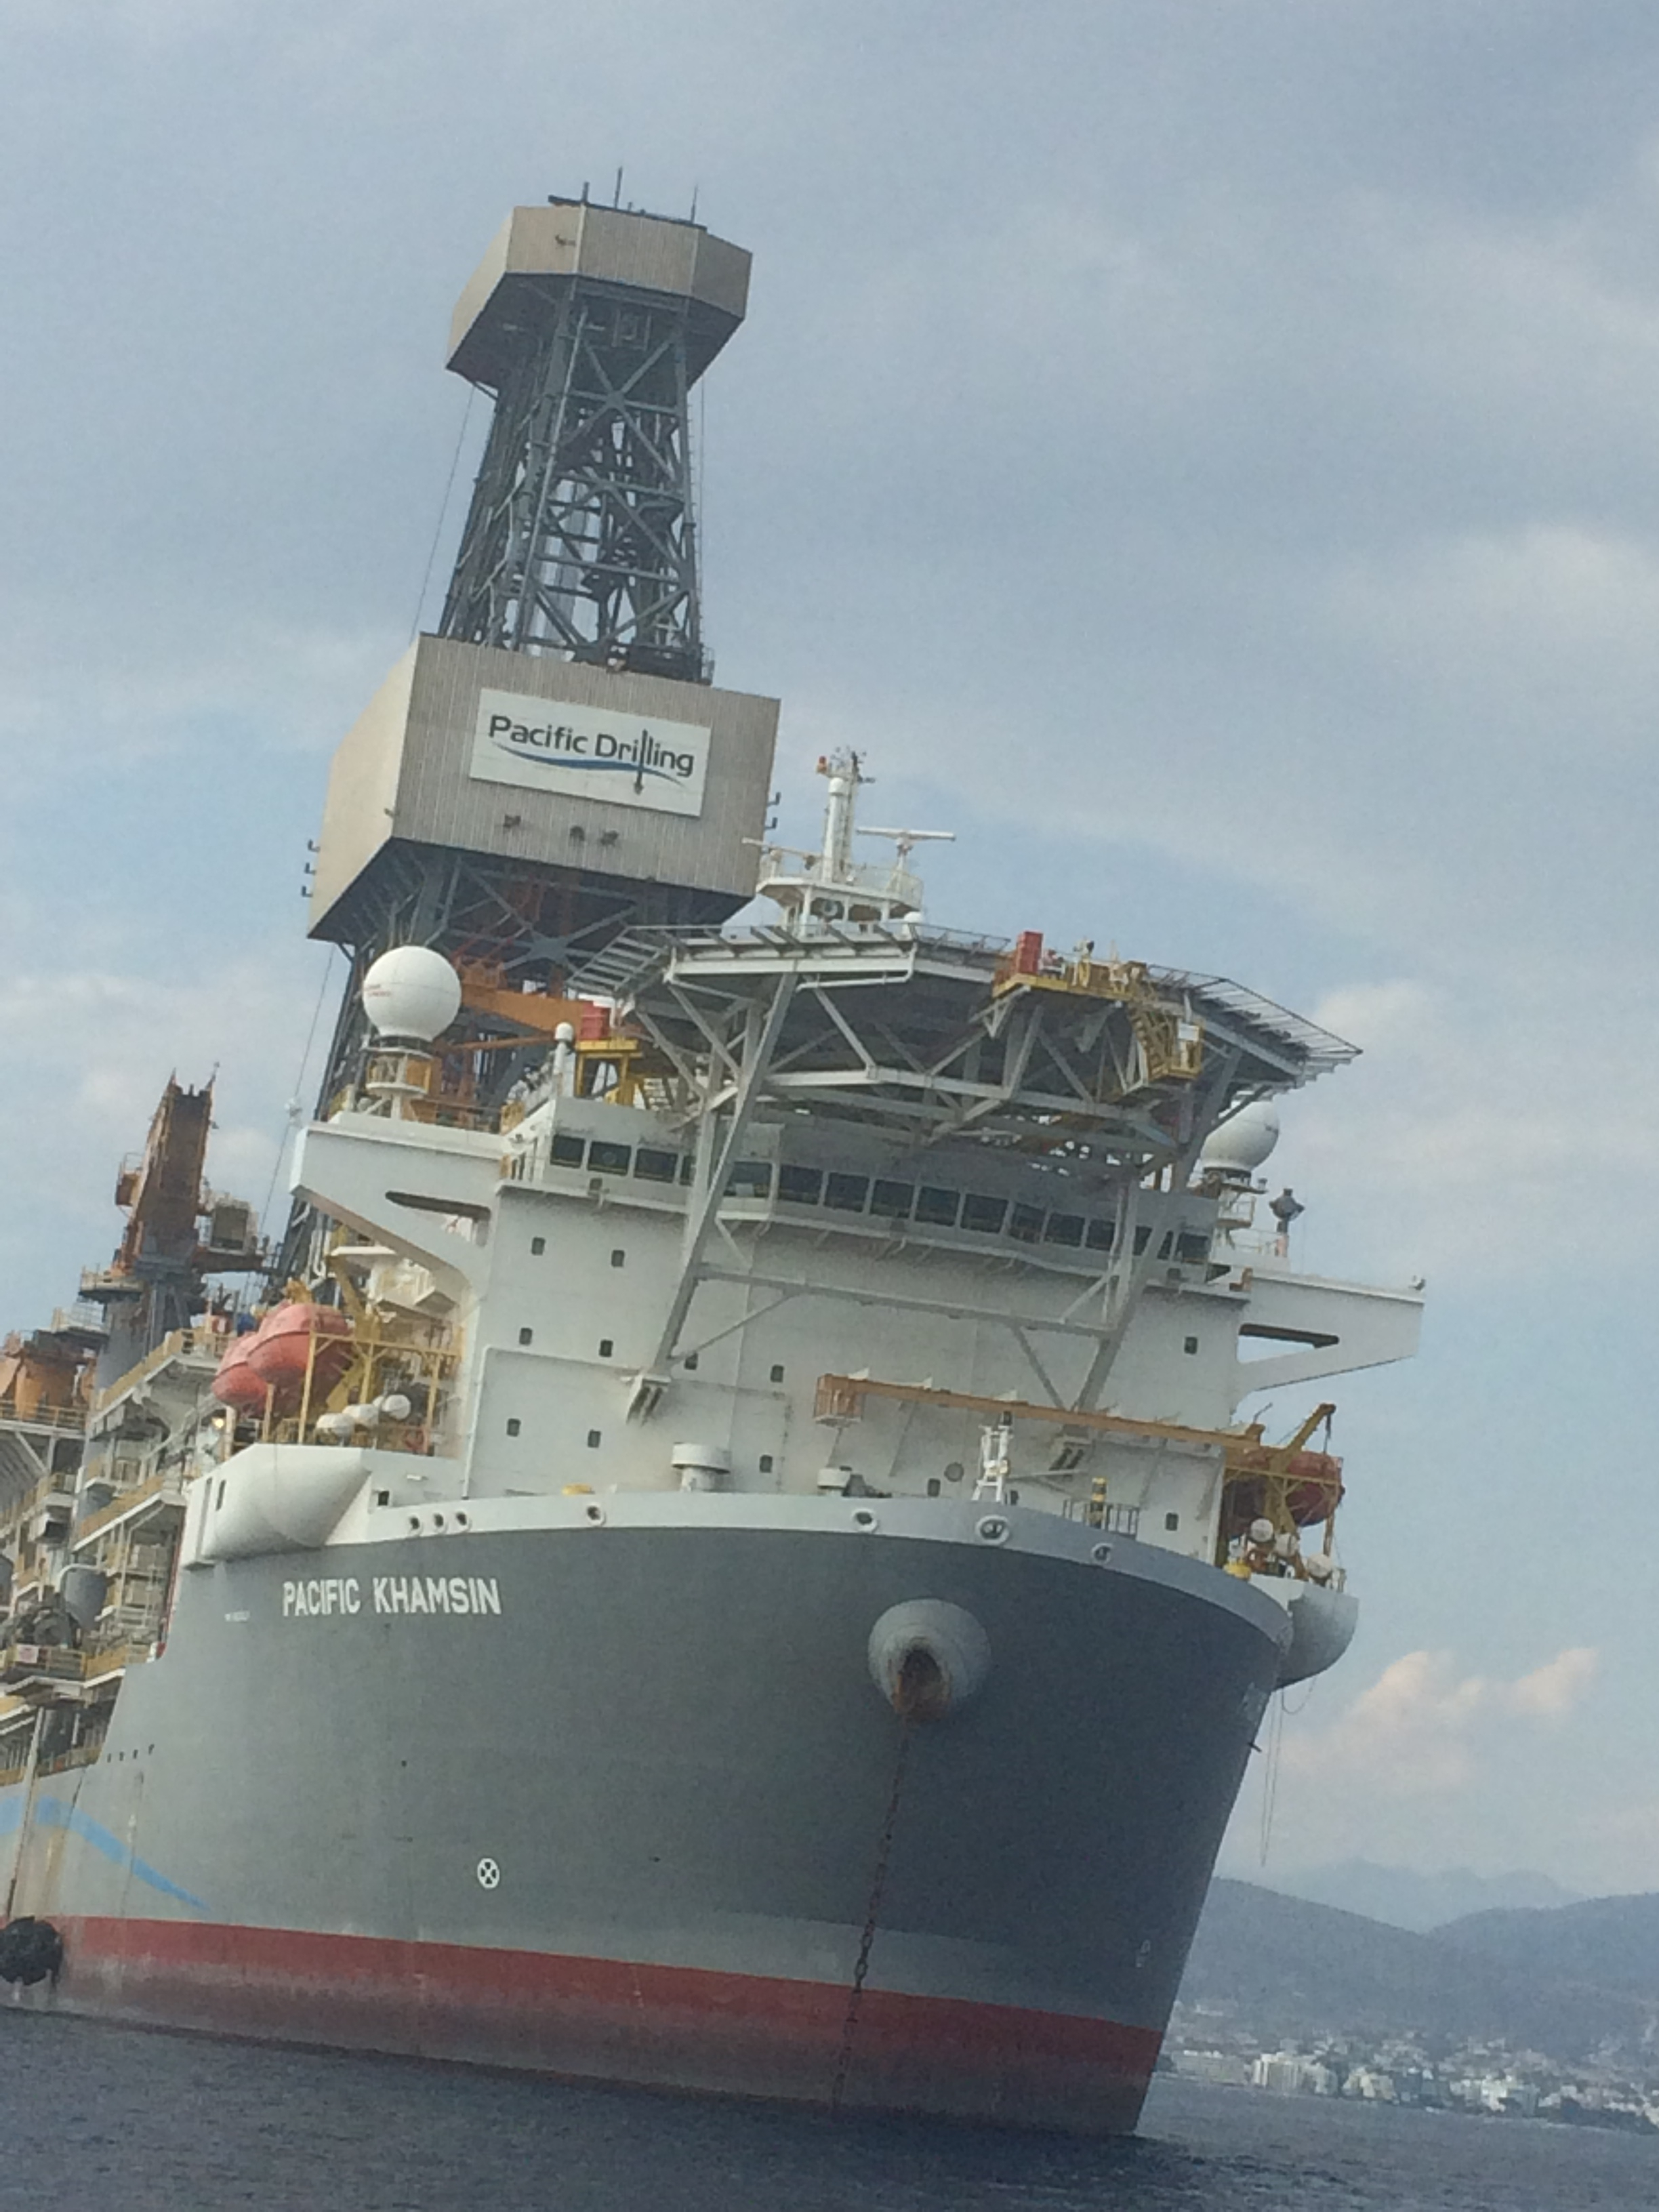 Turkish Petroleum hires Schlumberger for offshore drilling